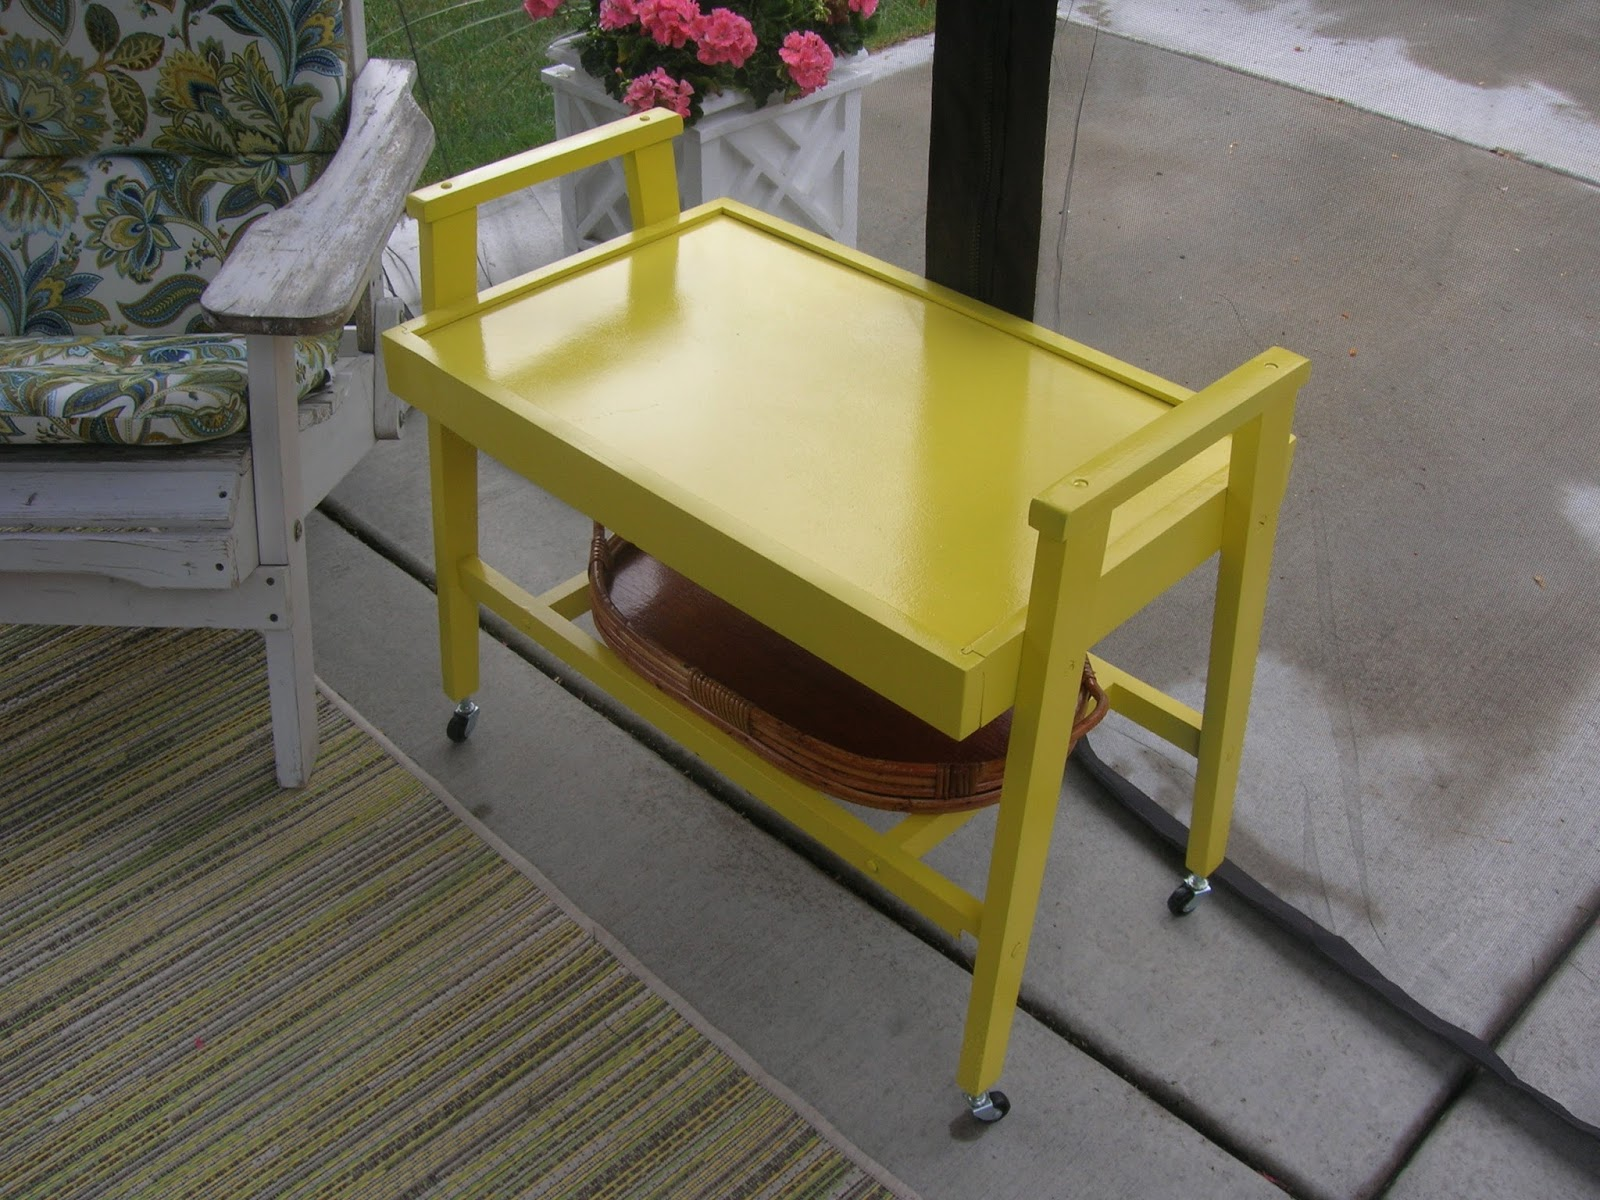 Maison newton yellow outdoor coffee tableside table done three plus coats 2 cans yellow spray paint over 2 coats of primer to give me the glossy look i wanted sheds water really well tested out last night geotapseo Choice Image